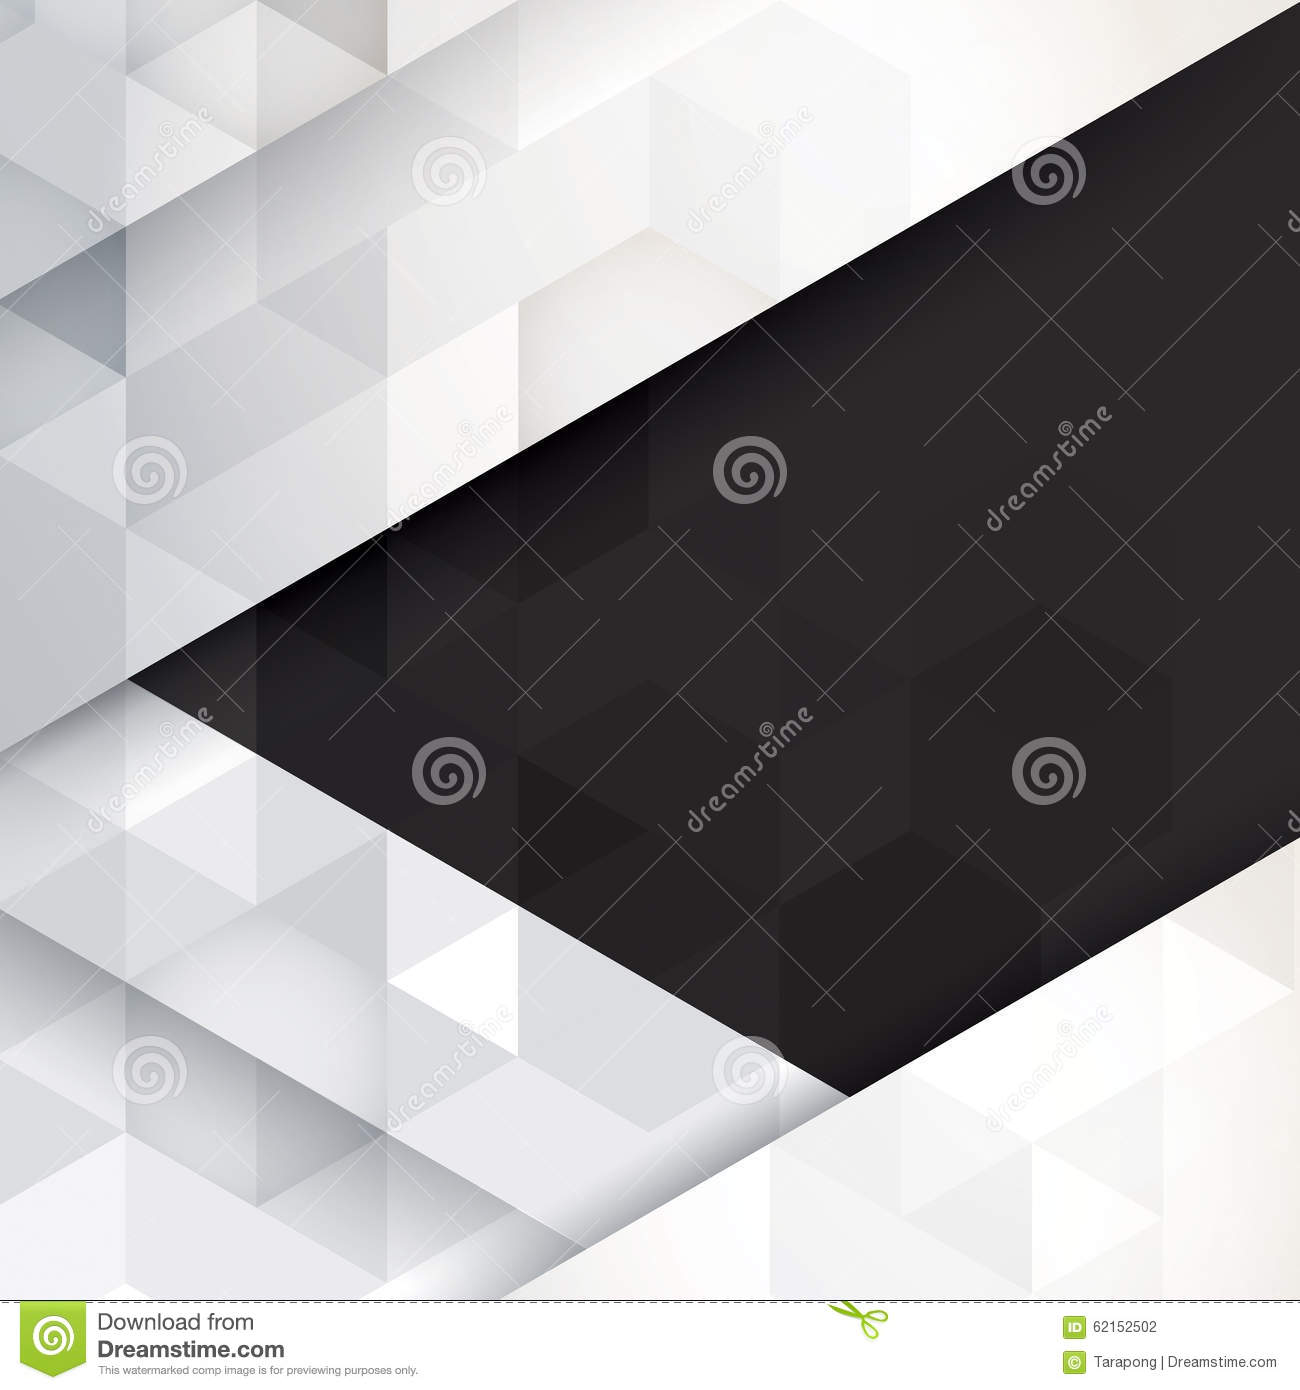 Book Cover Design Black And White : Black and white abstract background vector stock